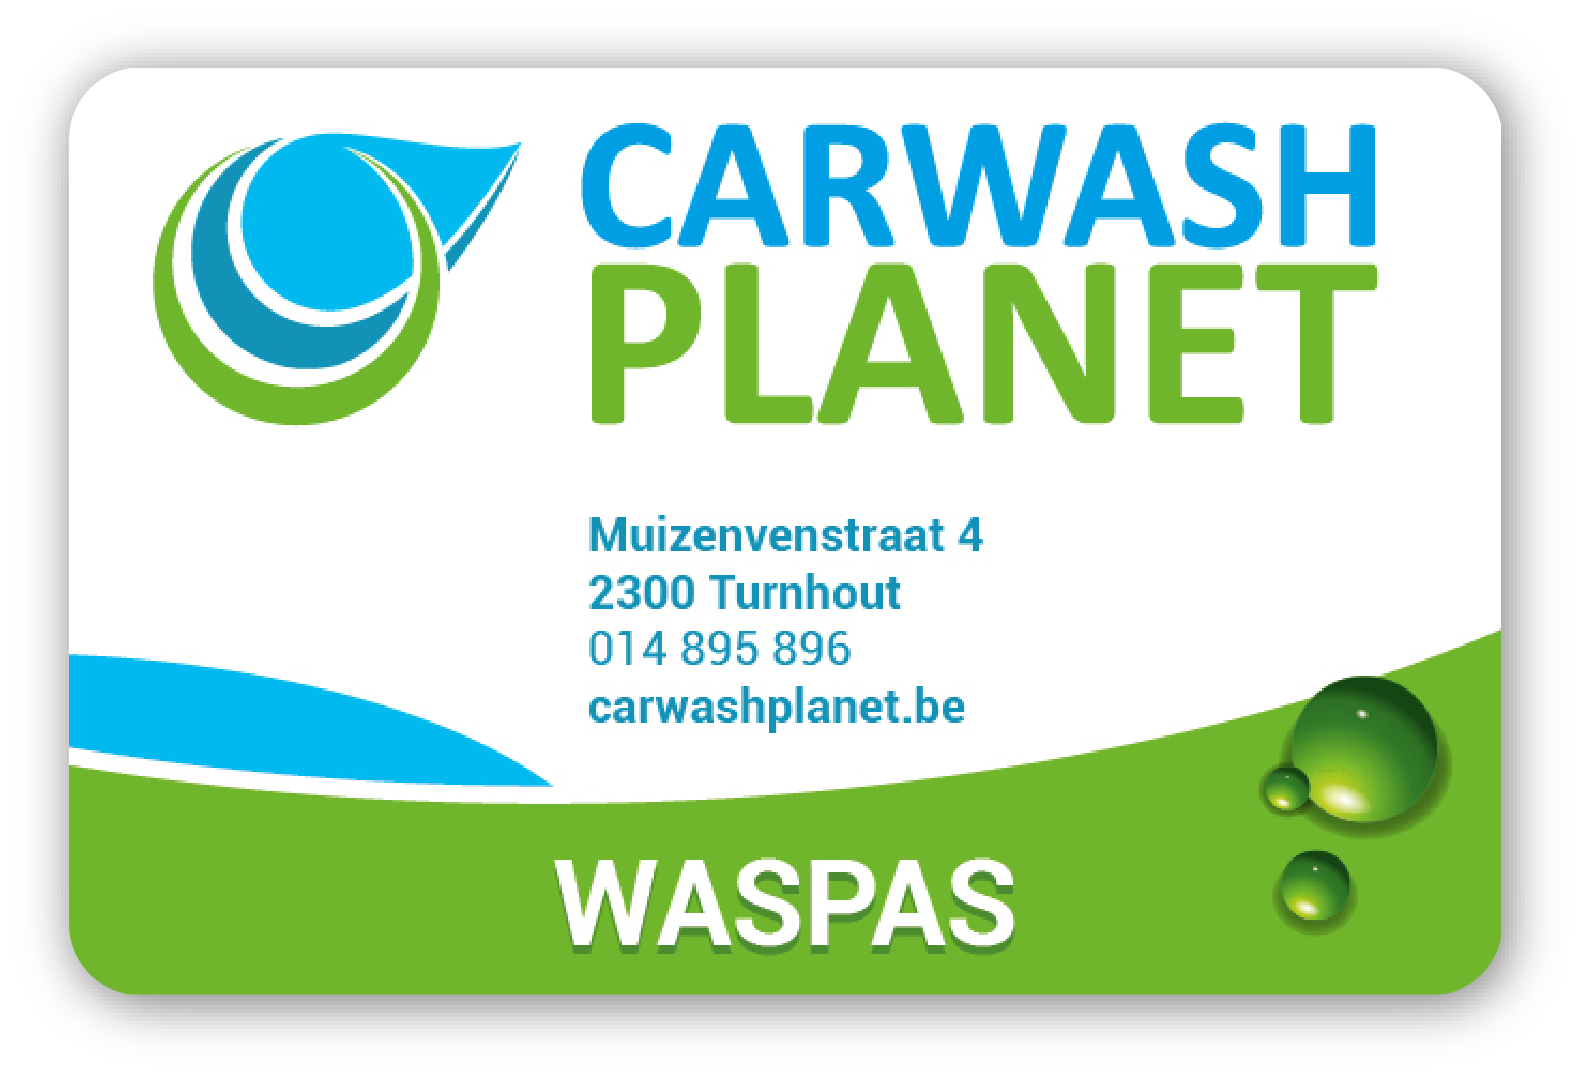 Carwash Planet Waspas